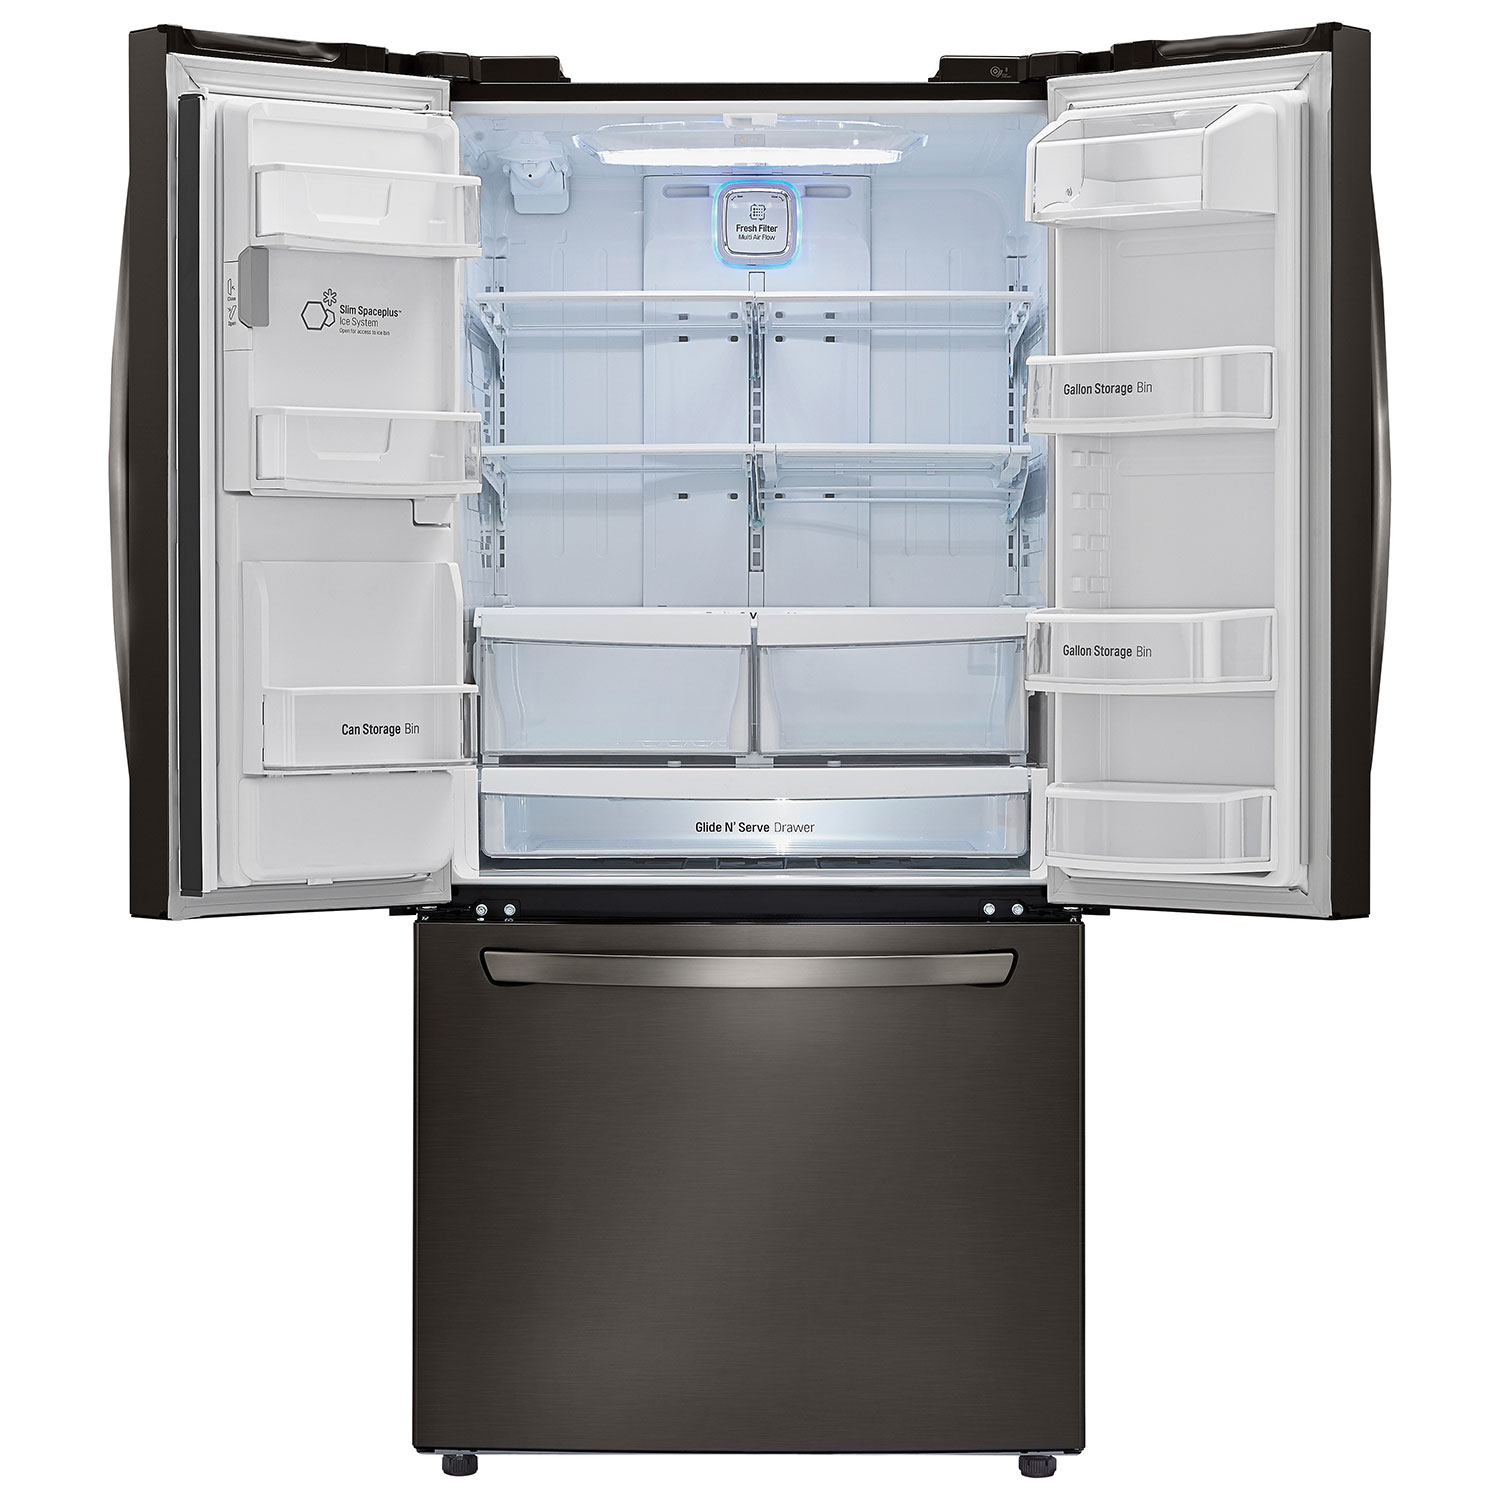 refrigerator black. ft. french door refrigerator with water \u0026 ice dispenser (lfxs24623d)-black stainless : refrigerators - best buy canada black